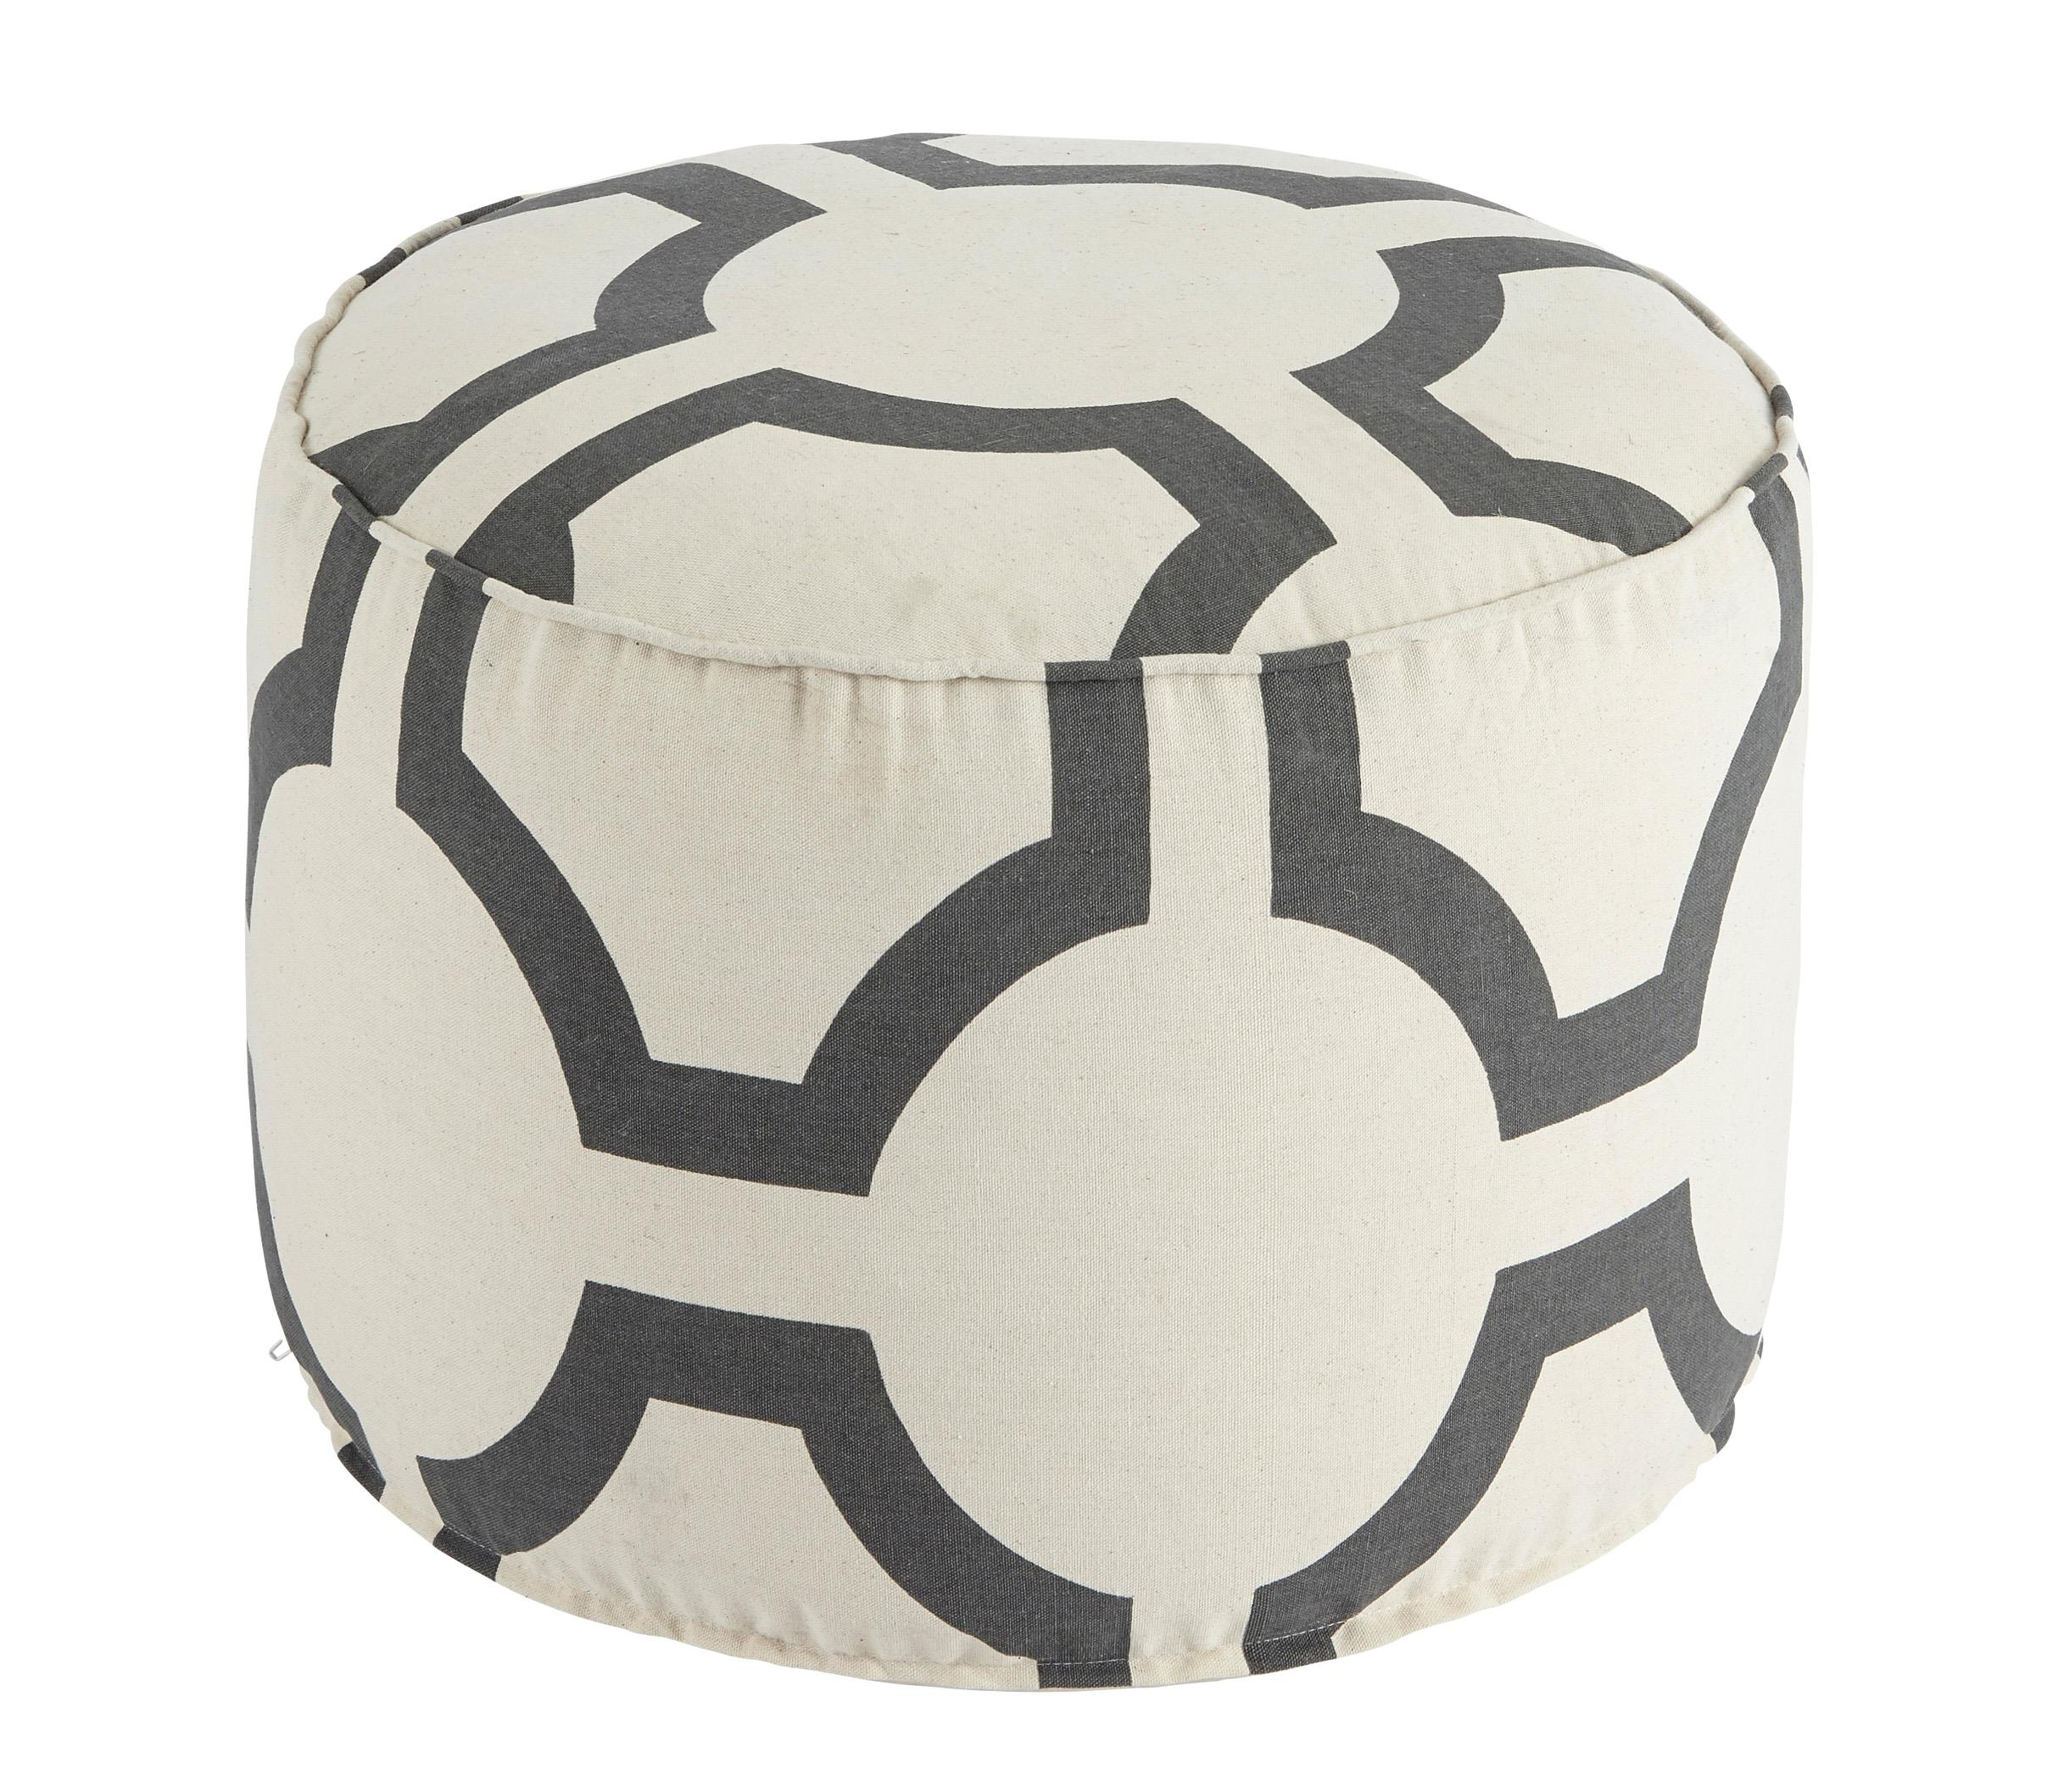 Signature Design by Ashley Poufs Geometric - Charcoal Pouf - Item Number: A1000425